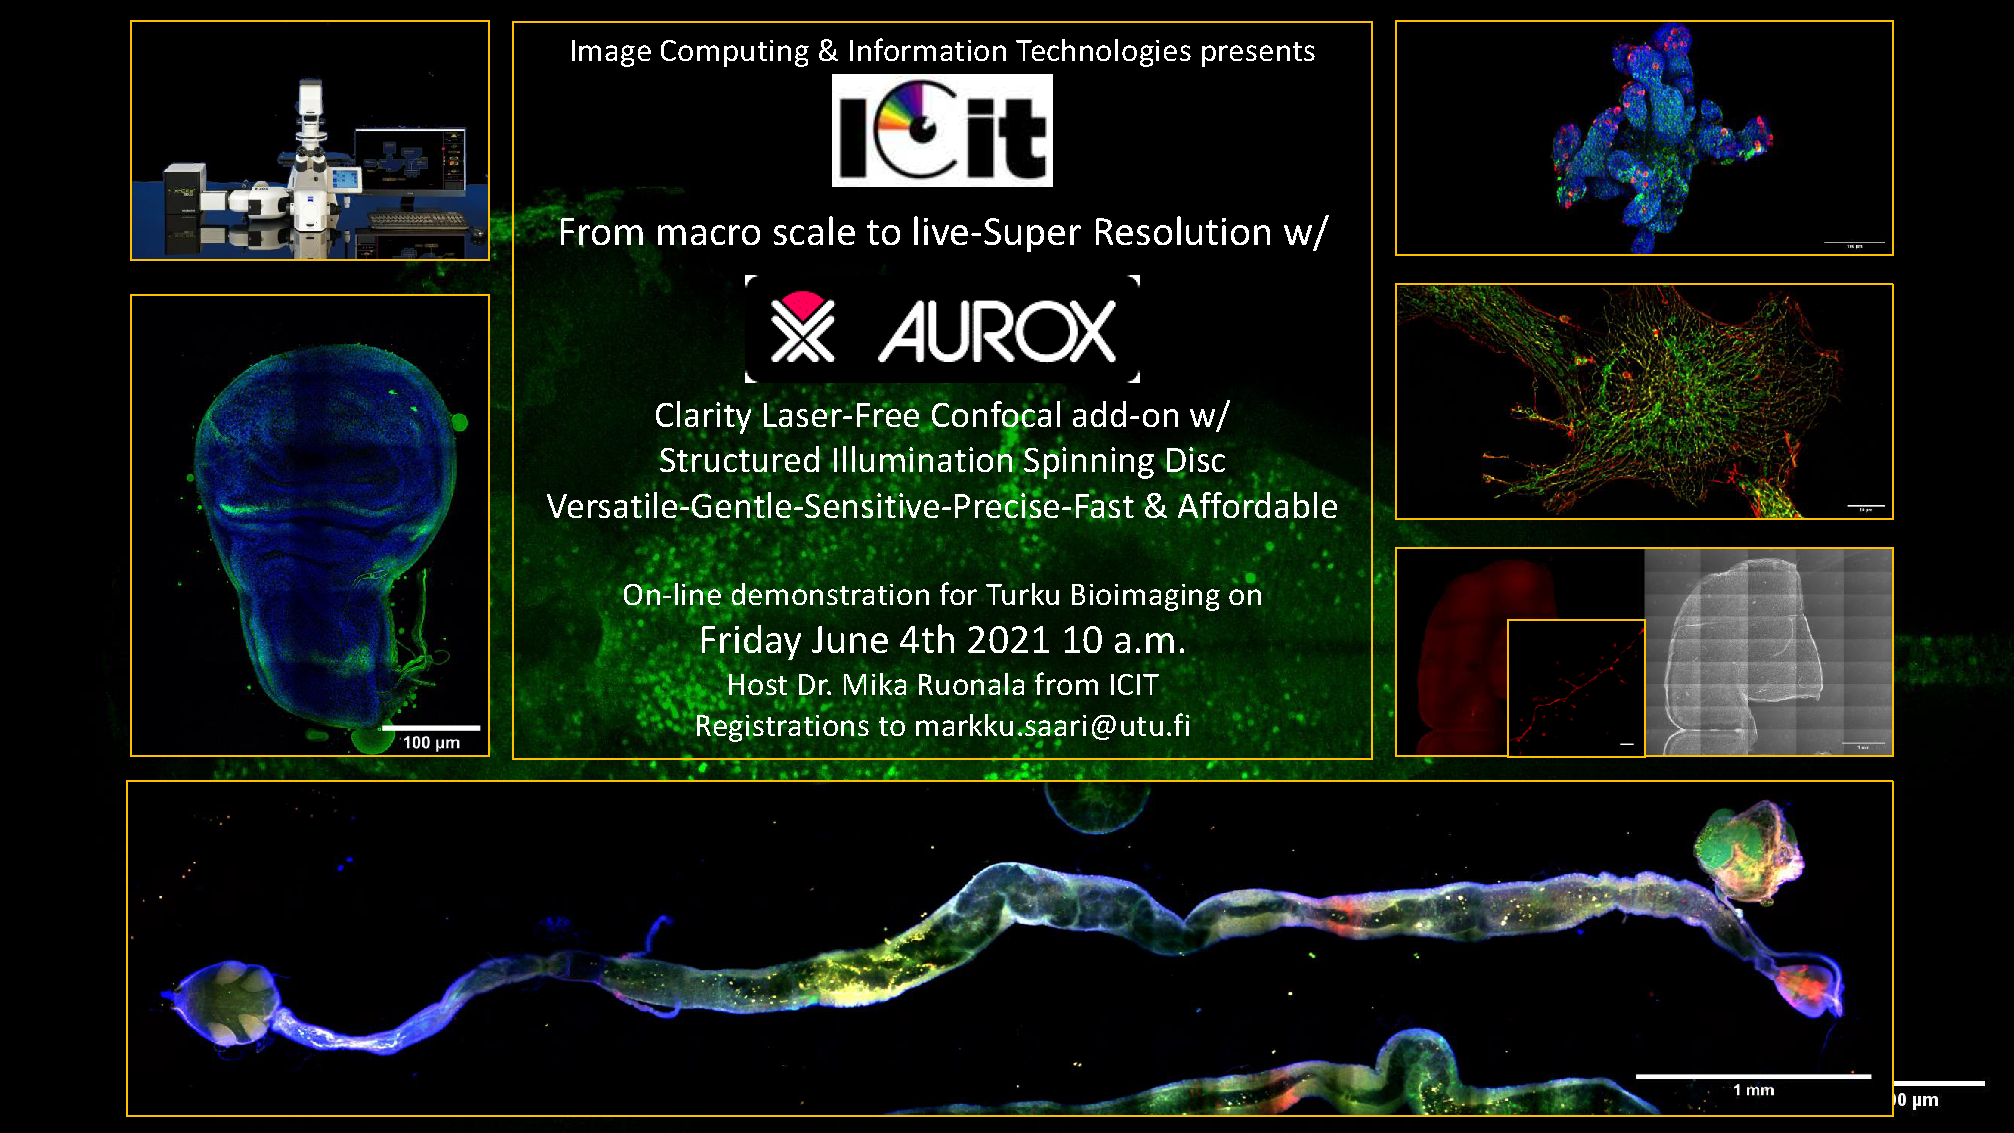 Welcome to Aurox Clarity fast confocal microscope demo